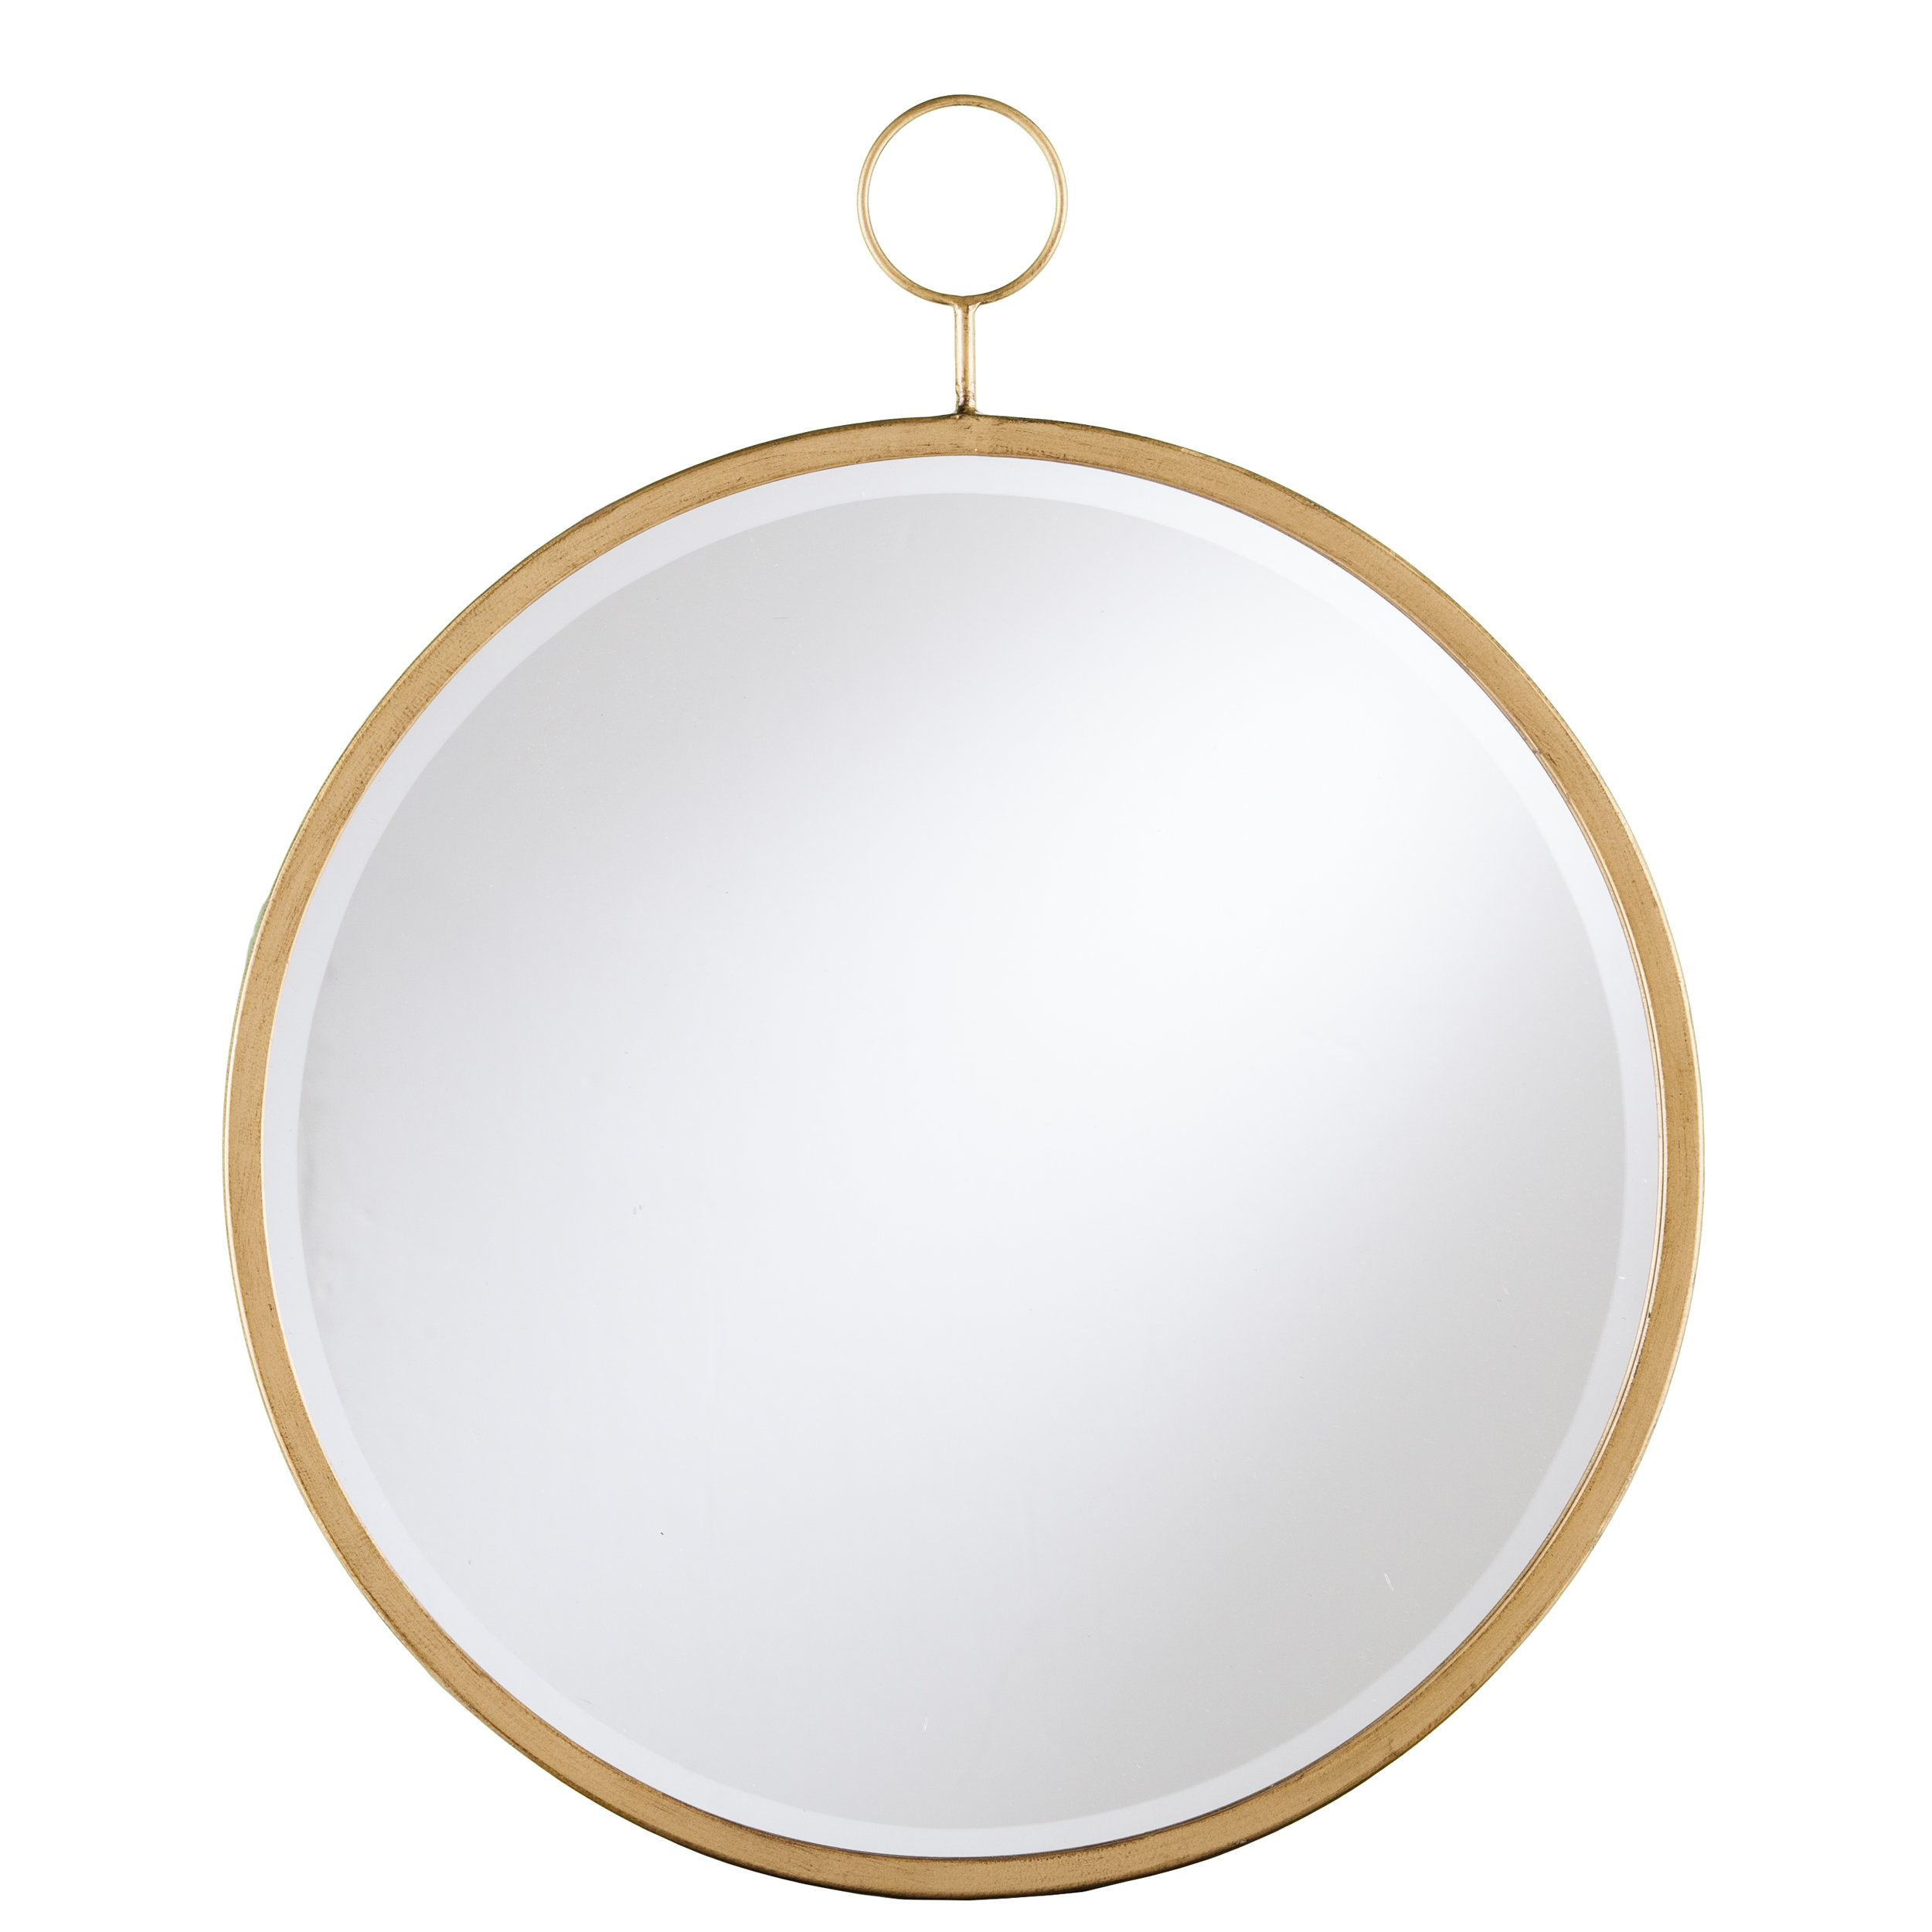 Wall Mirrors You'll Love In 2019 | Wayfair With Regard To Luna Accent Mirrors (Image 20 of 20)